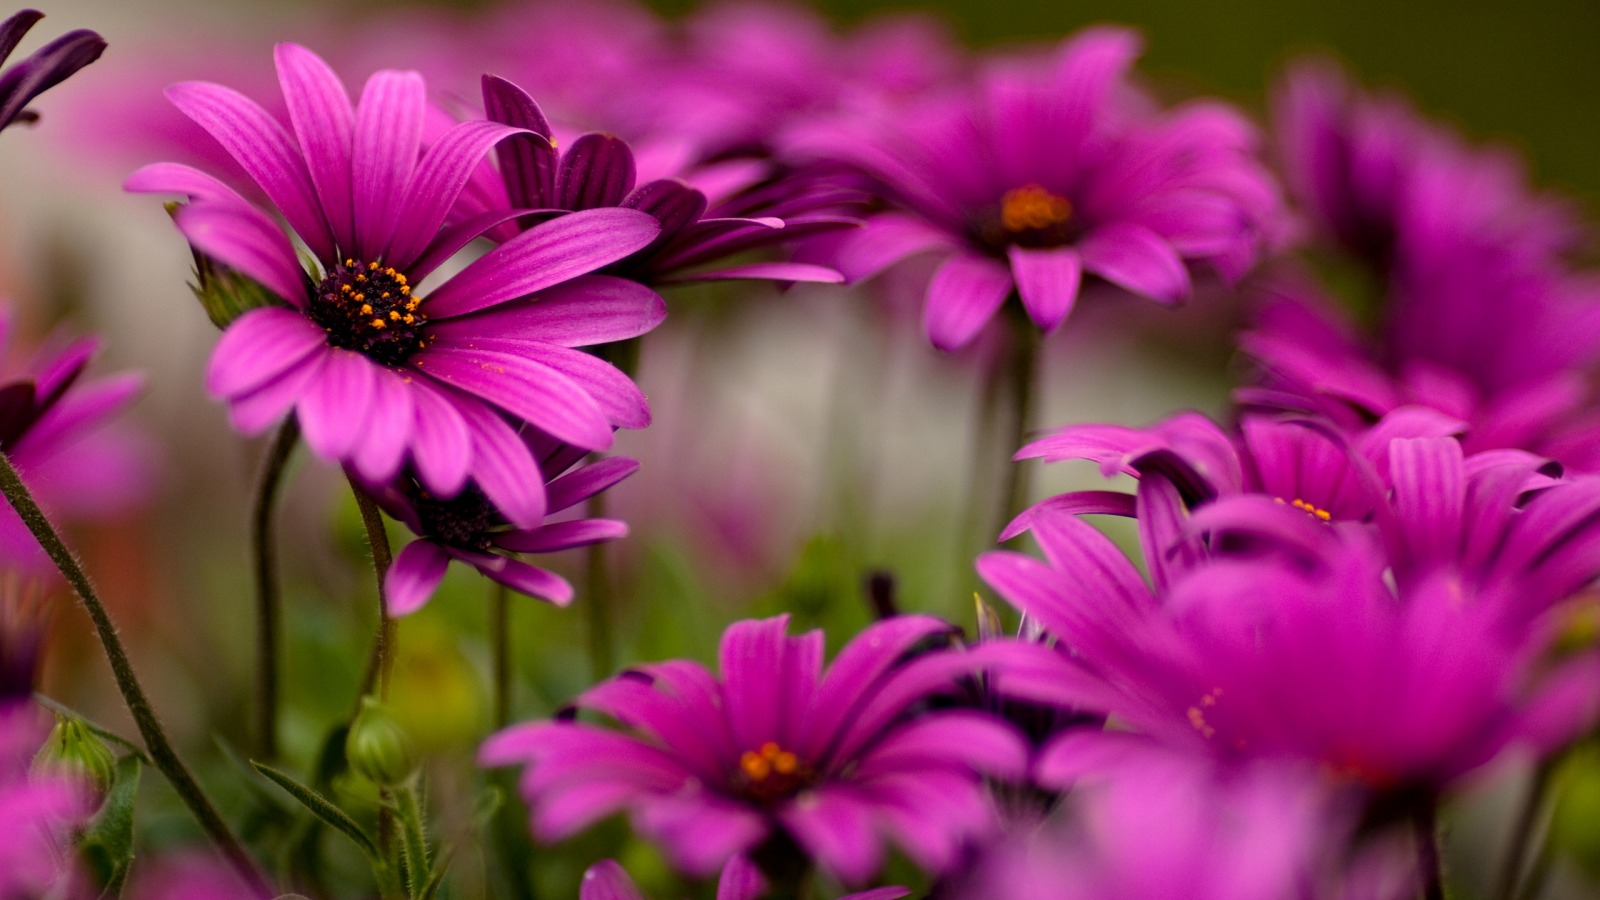 flower wallpaper flower wallpaper flower wallpaper flower wallpaper ...